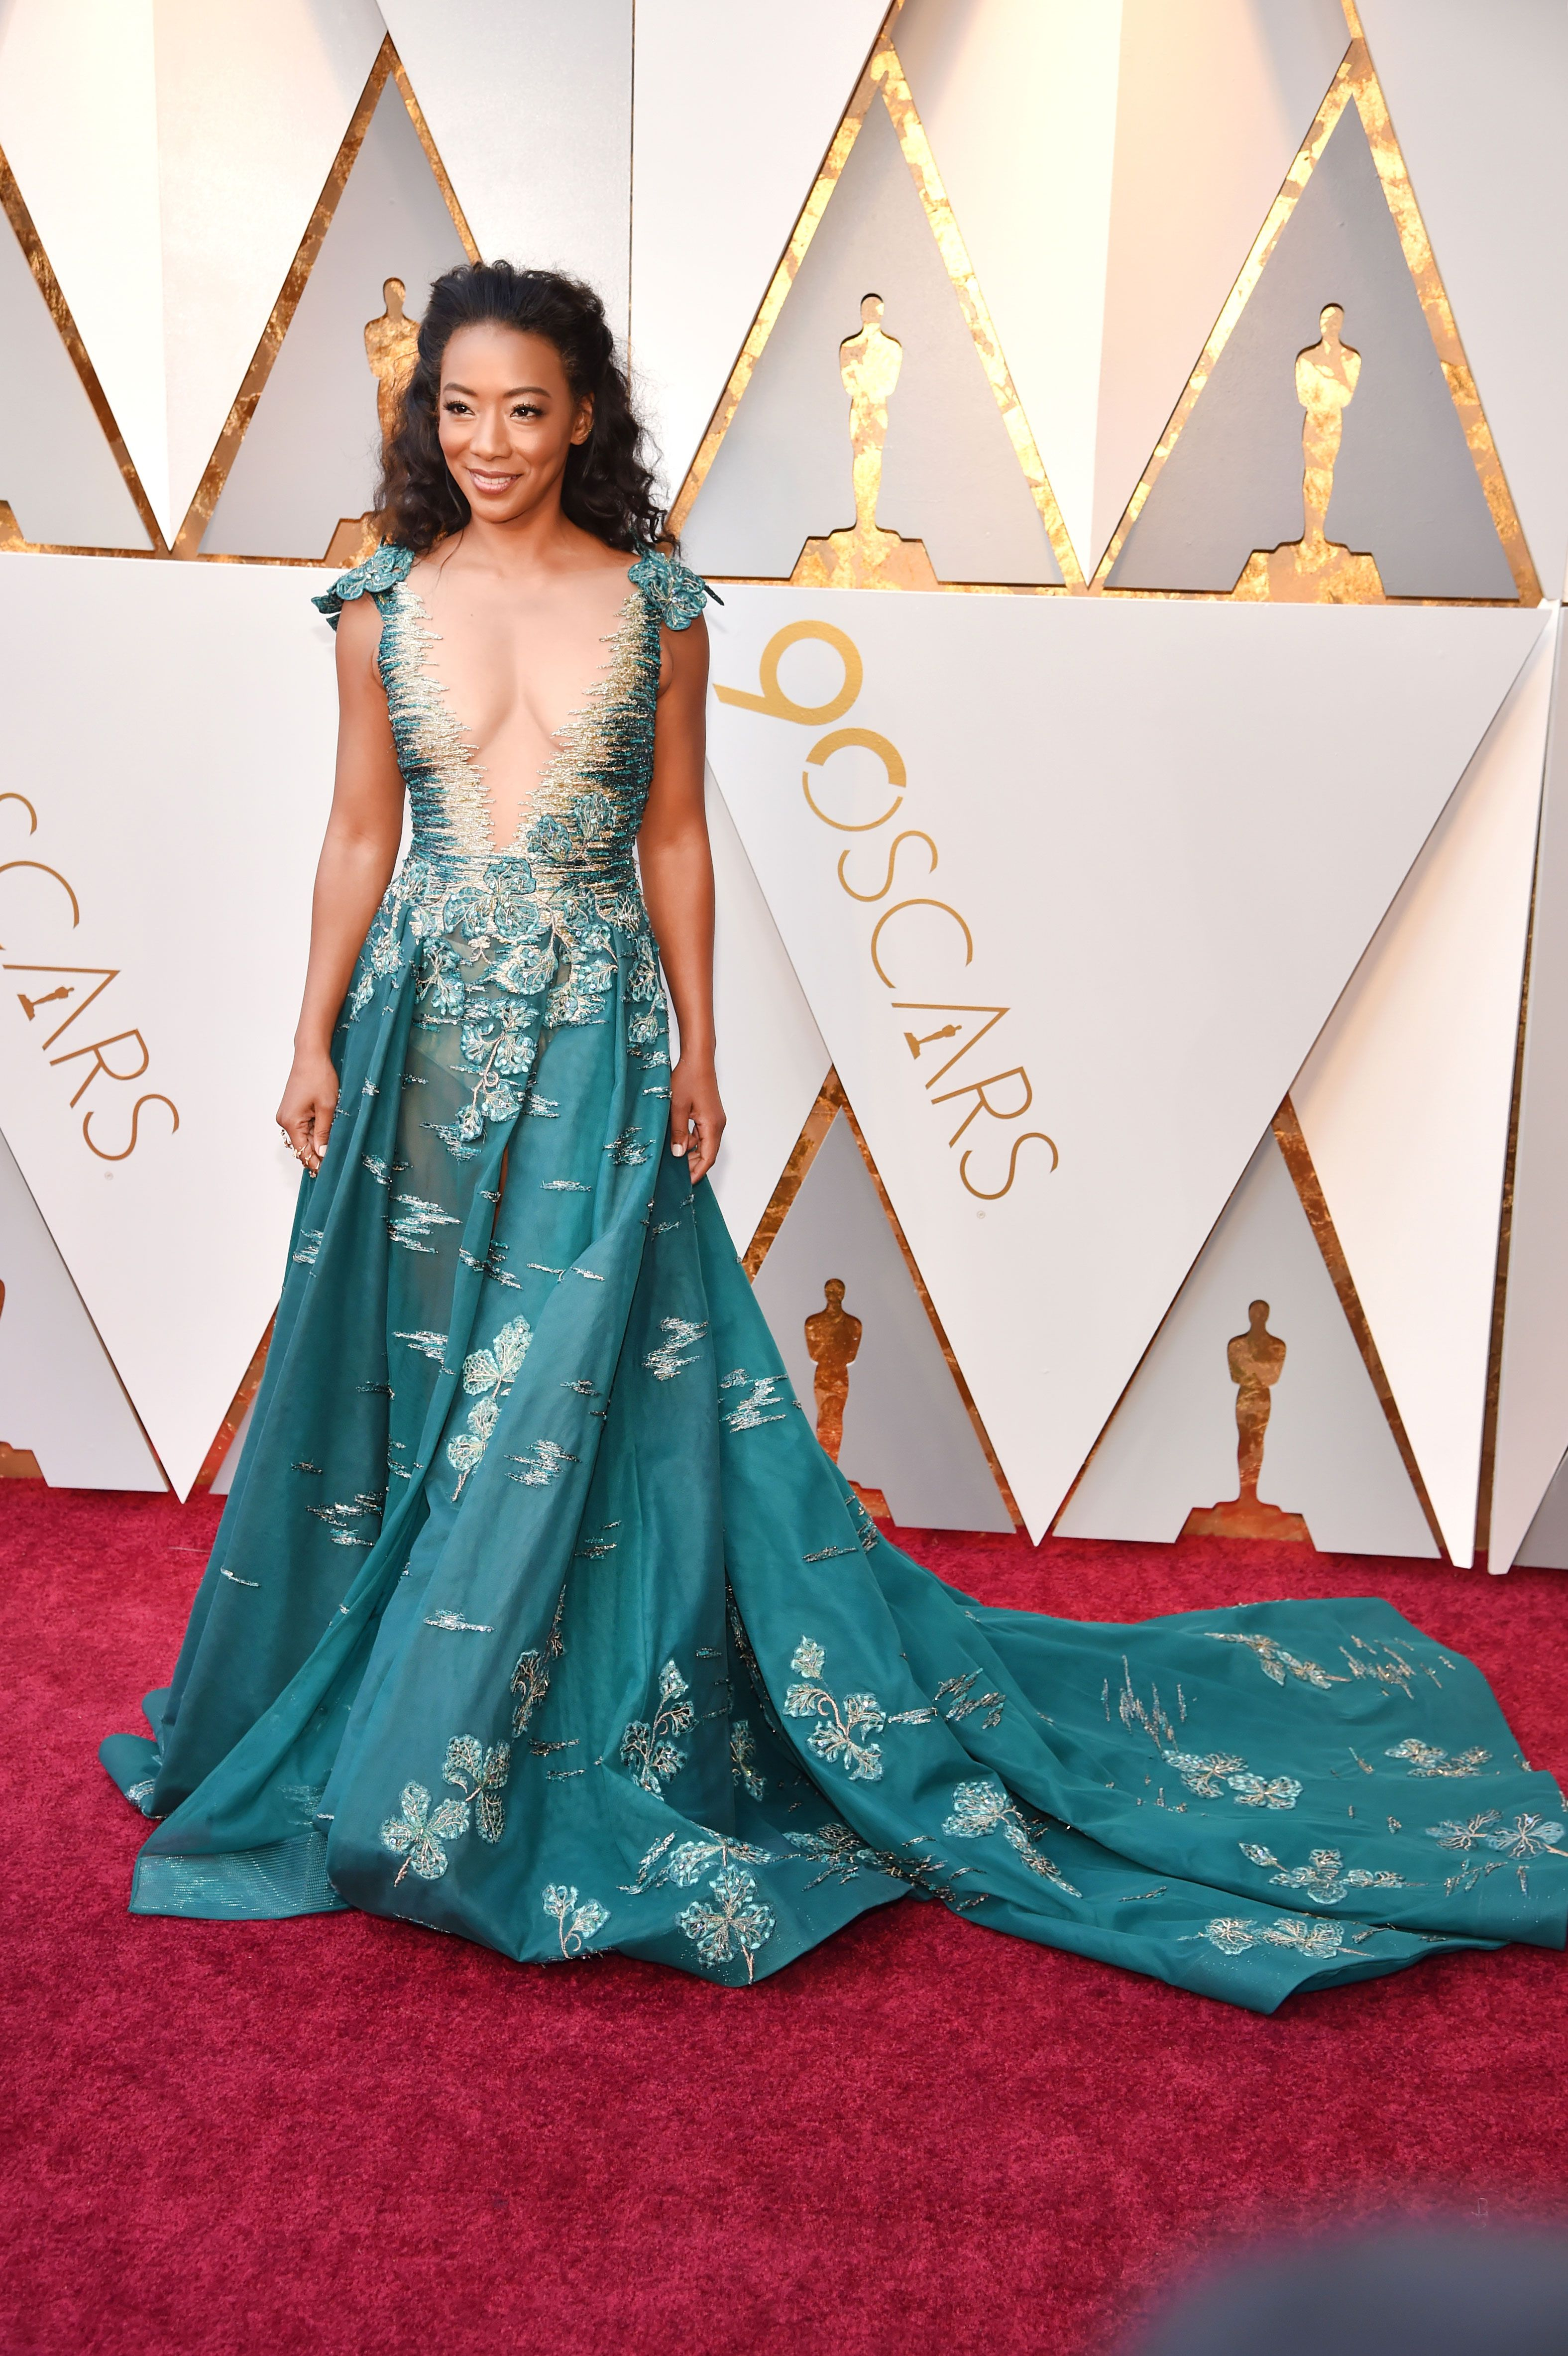 Best Oscars Red Carpet Dresses 2018 – Red Carpet Style From Academy ...